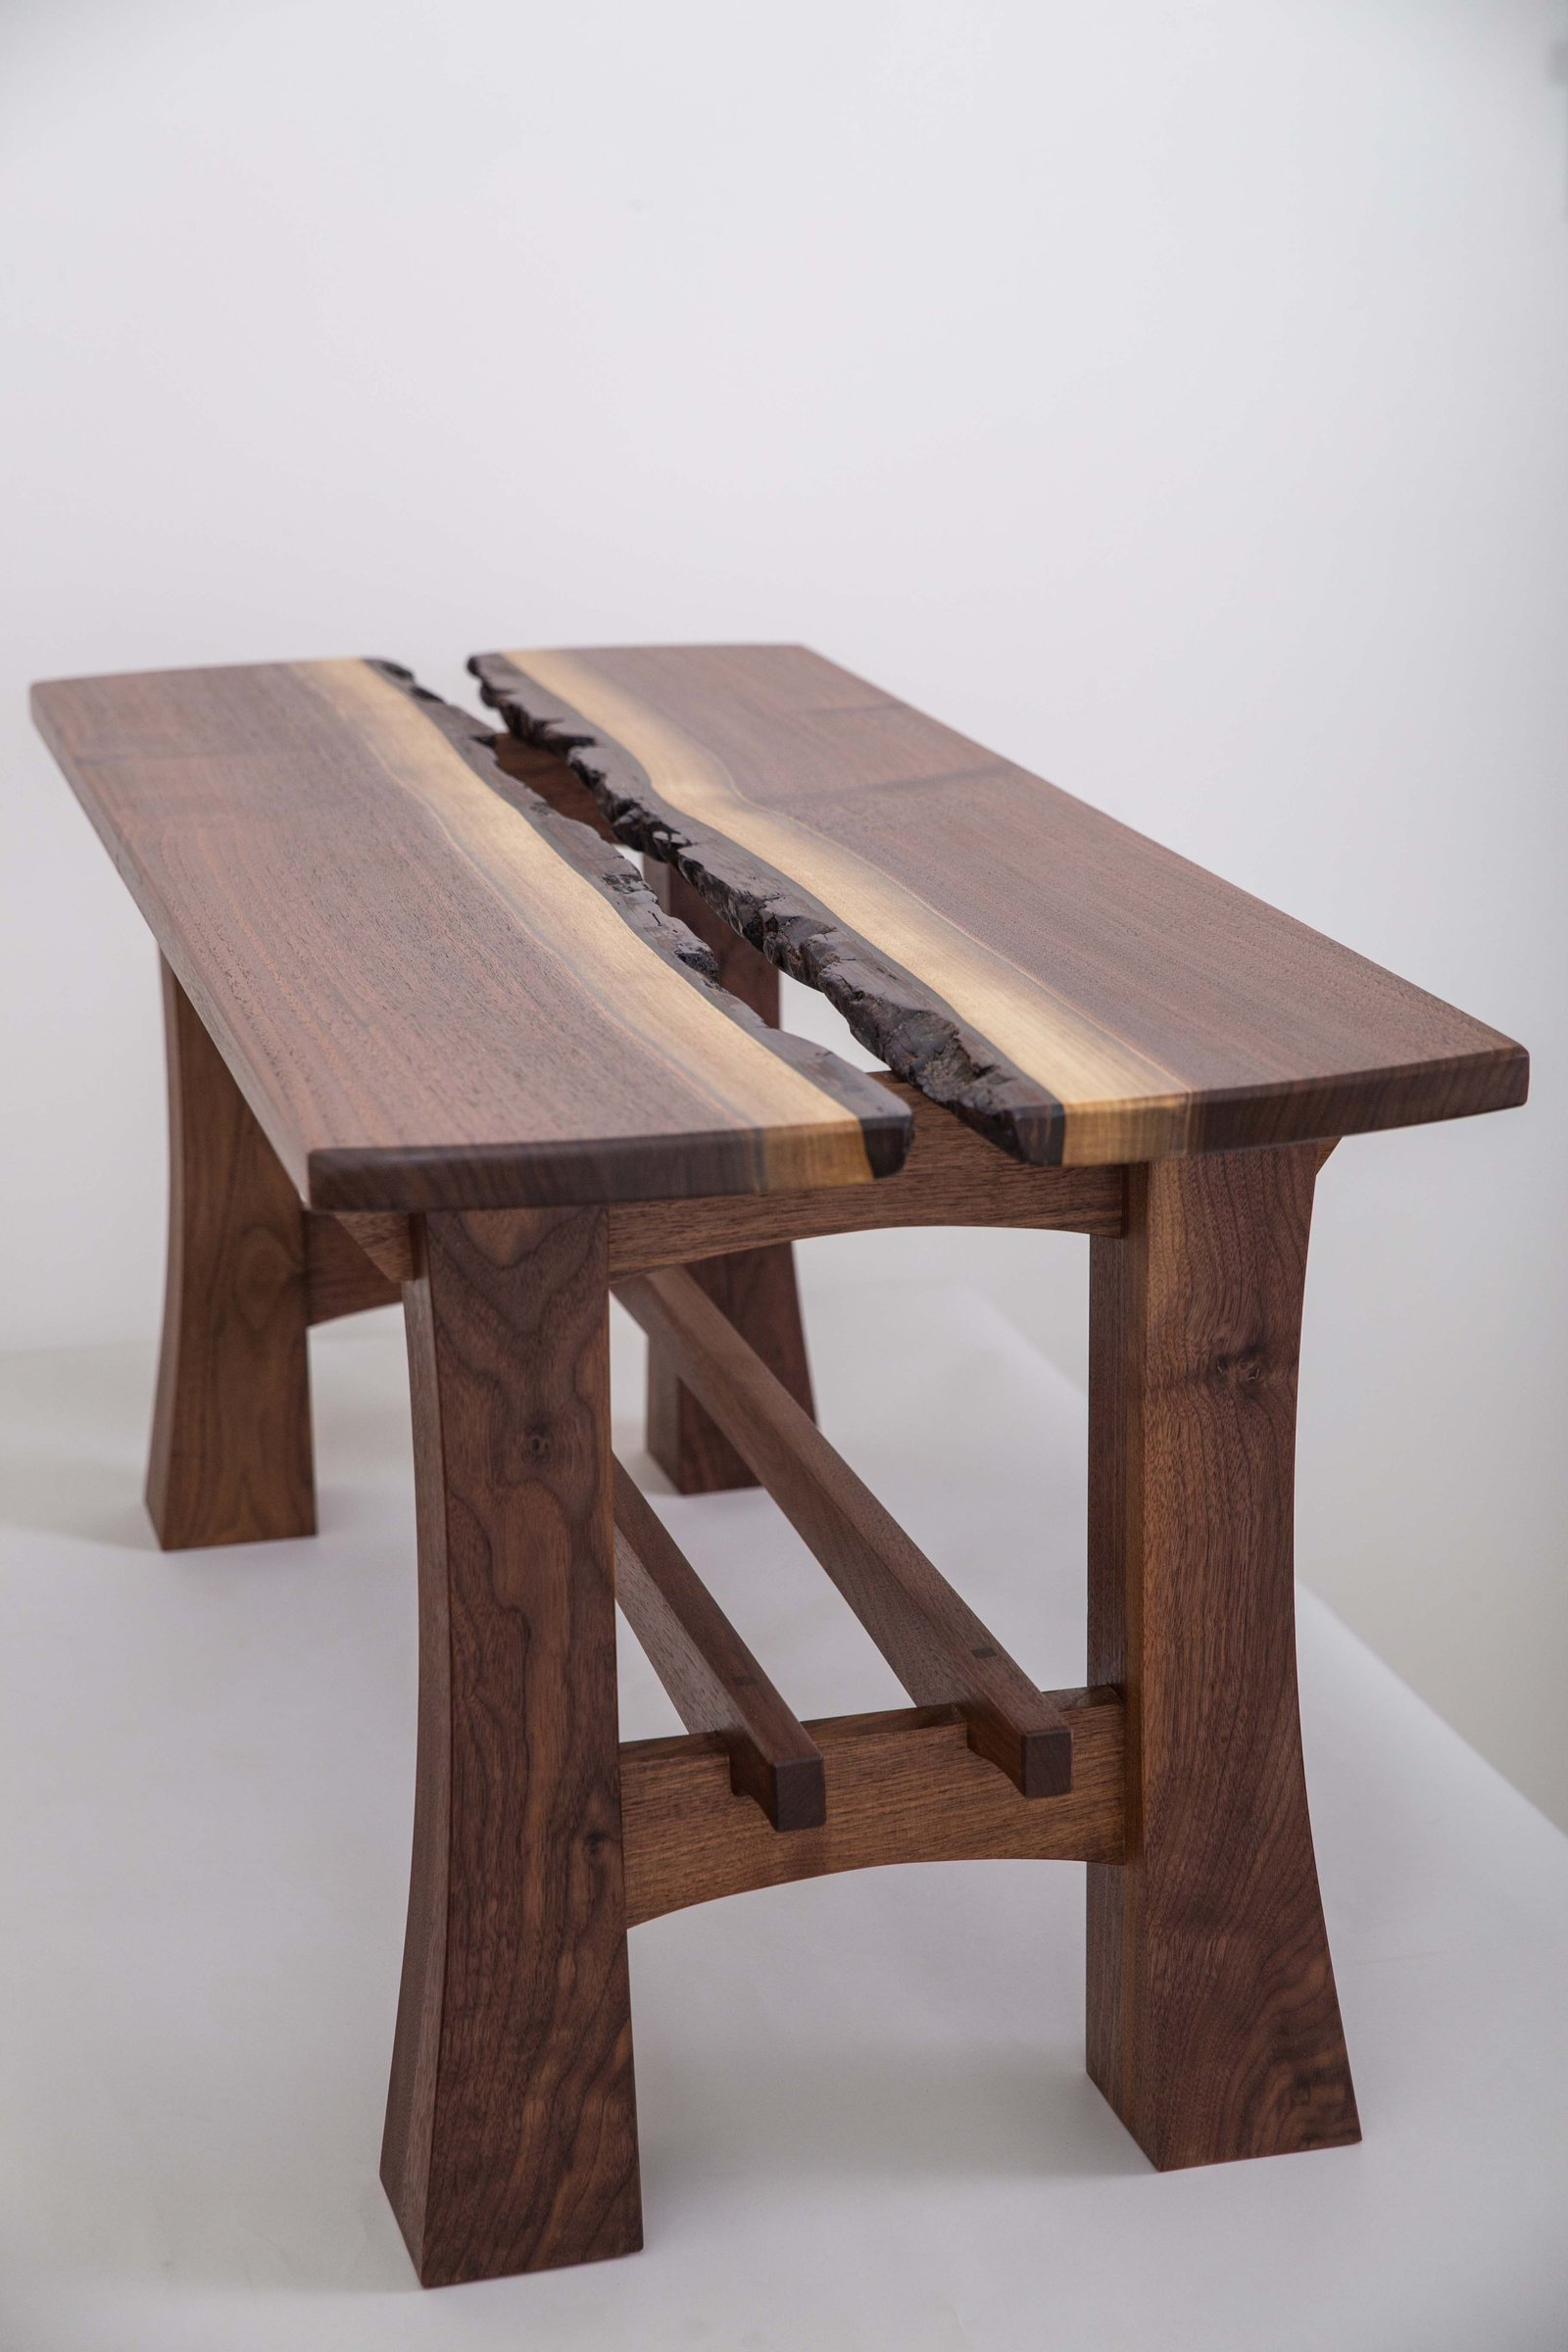 Lilly Coffee Table By Joshua Miller Wood Coffee Table